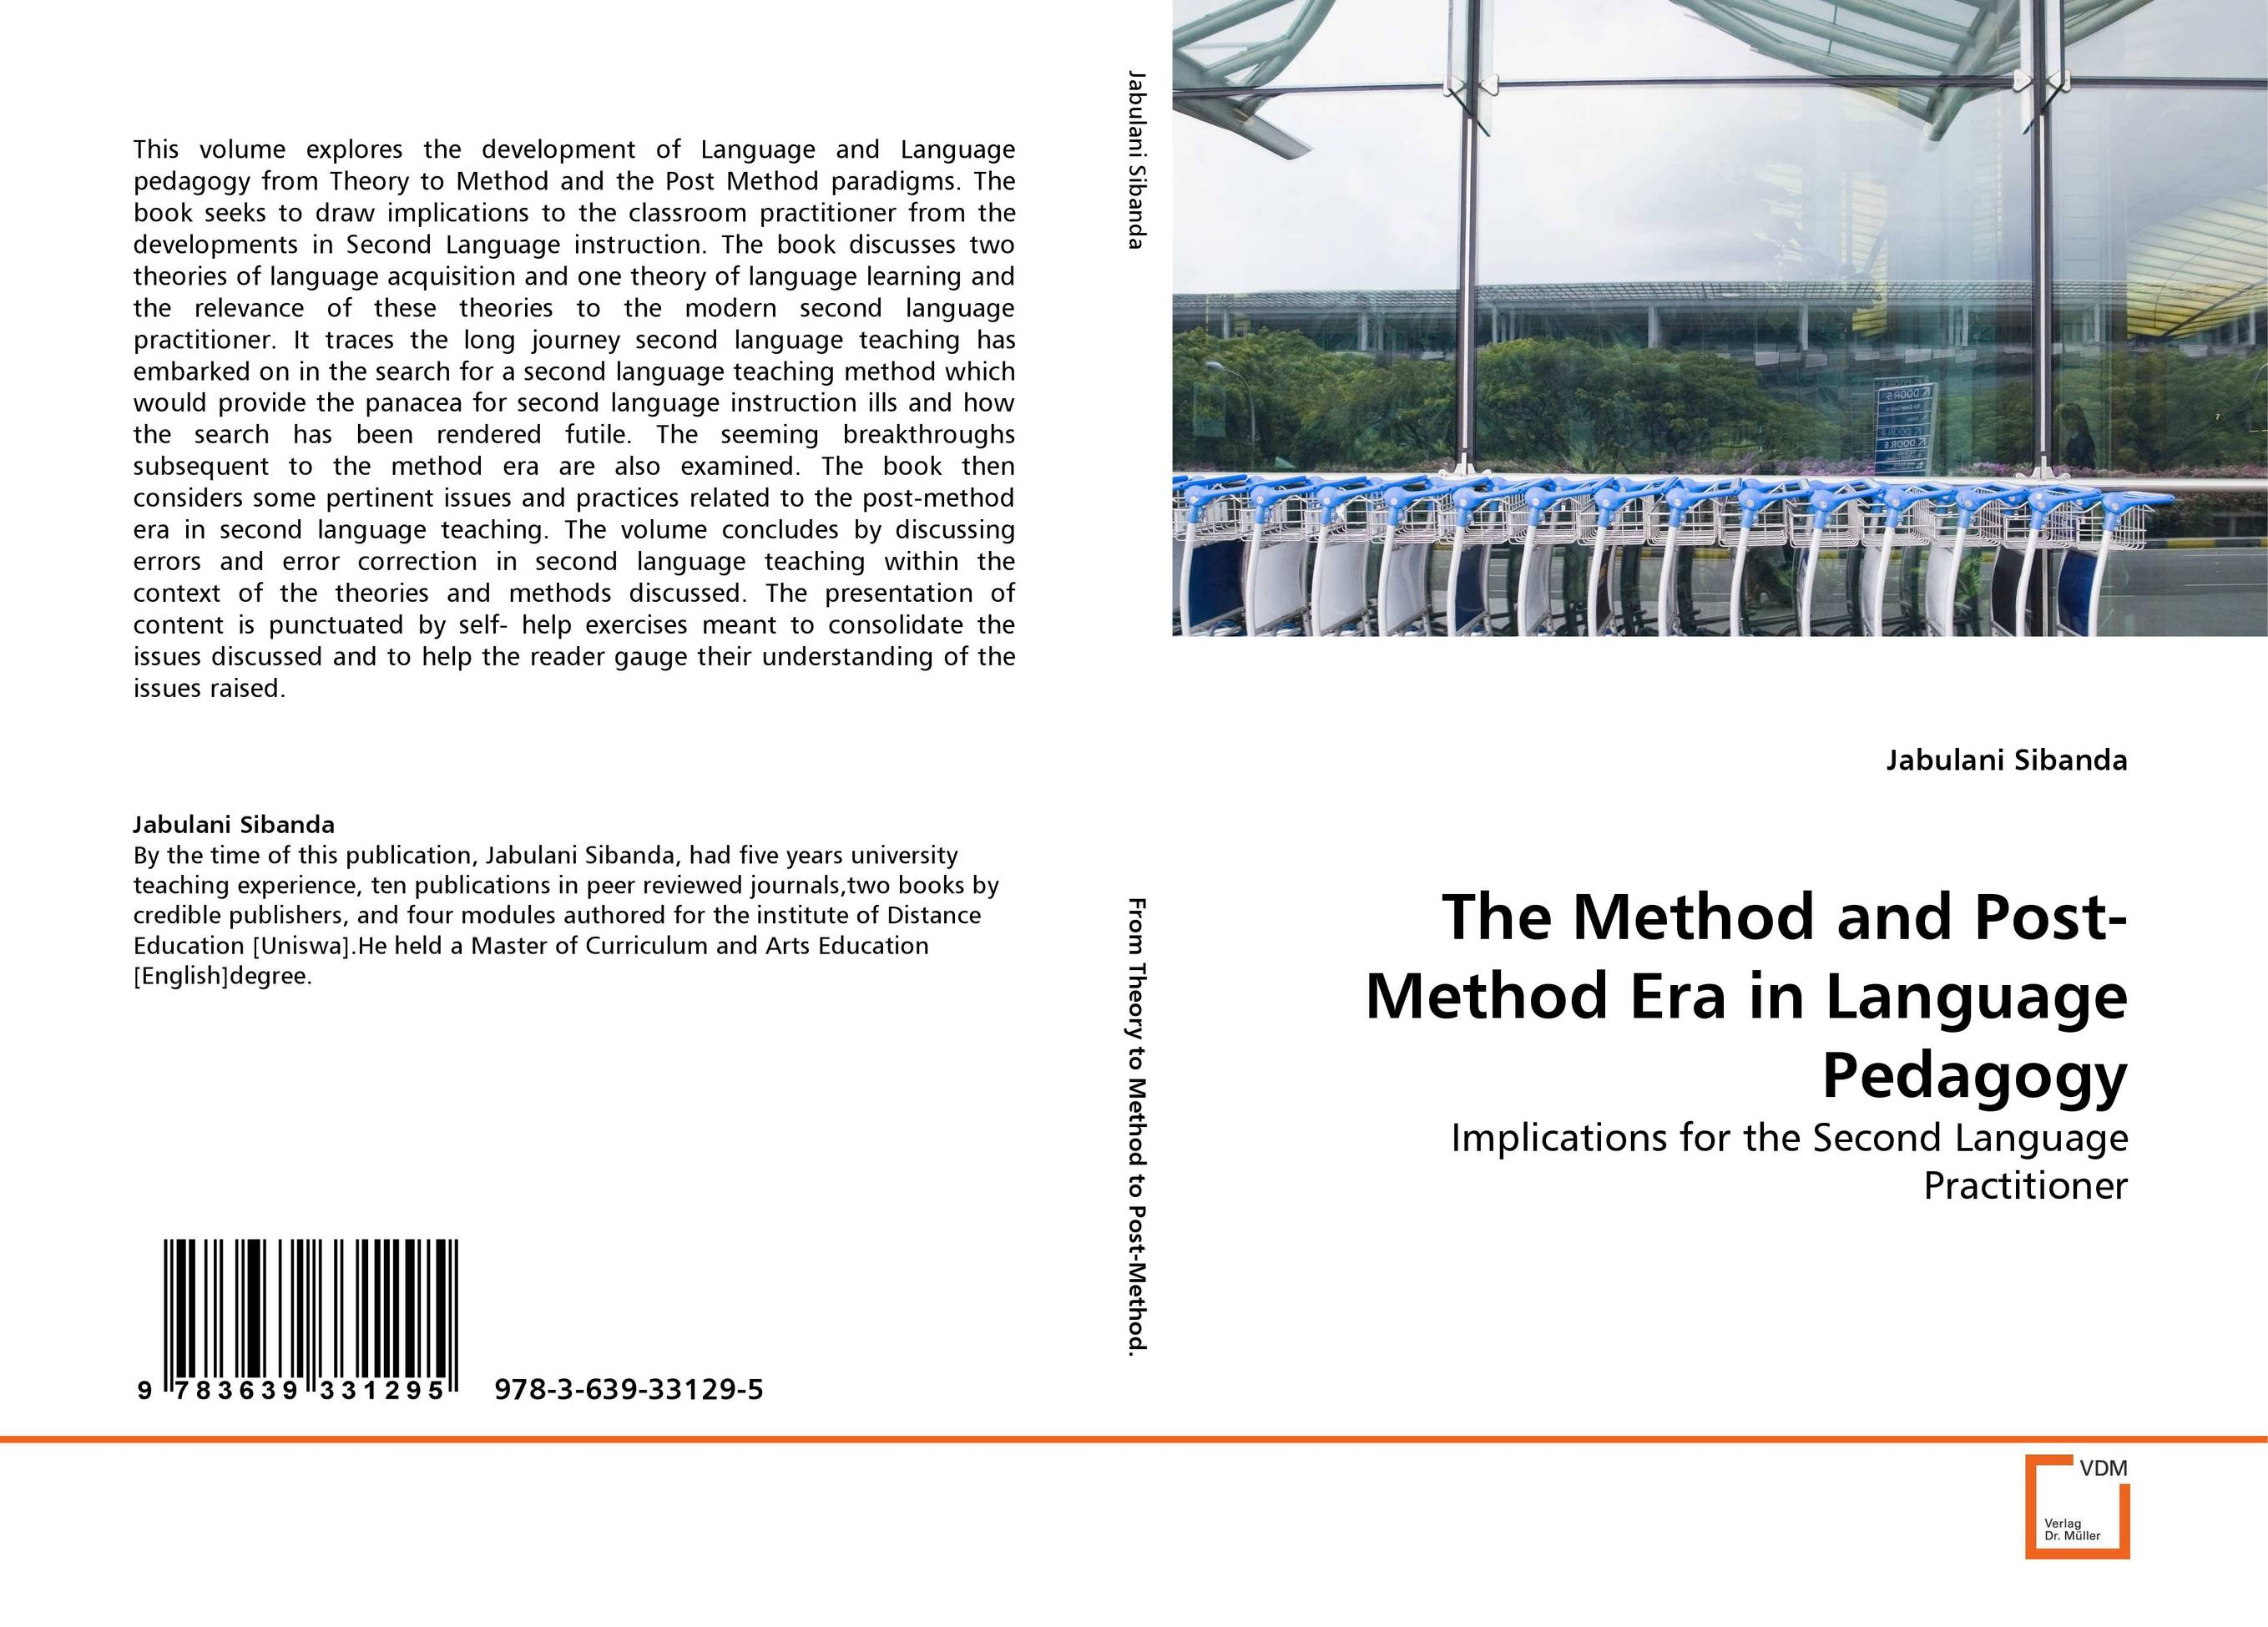 The Method and Post-Method Era in Language Pedagogy the quality of accreditation standards for distance learning